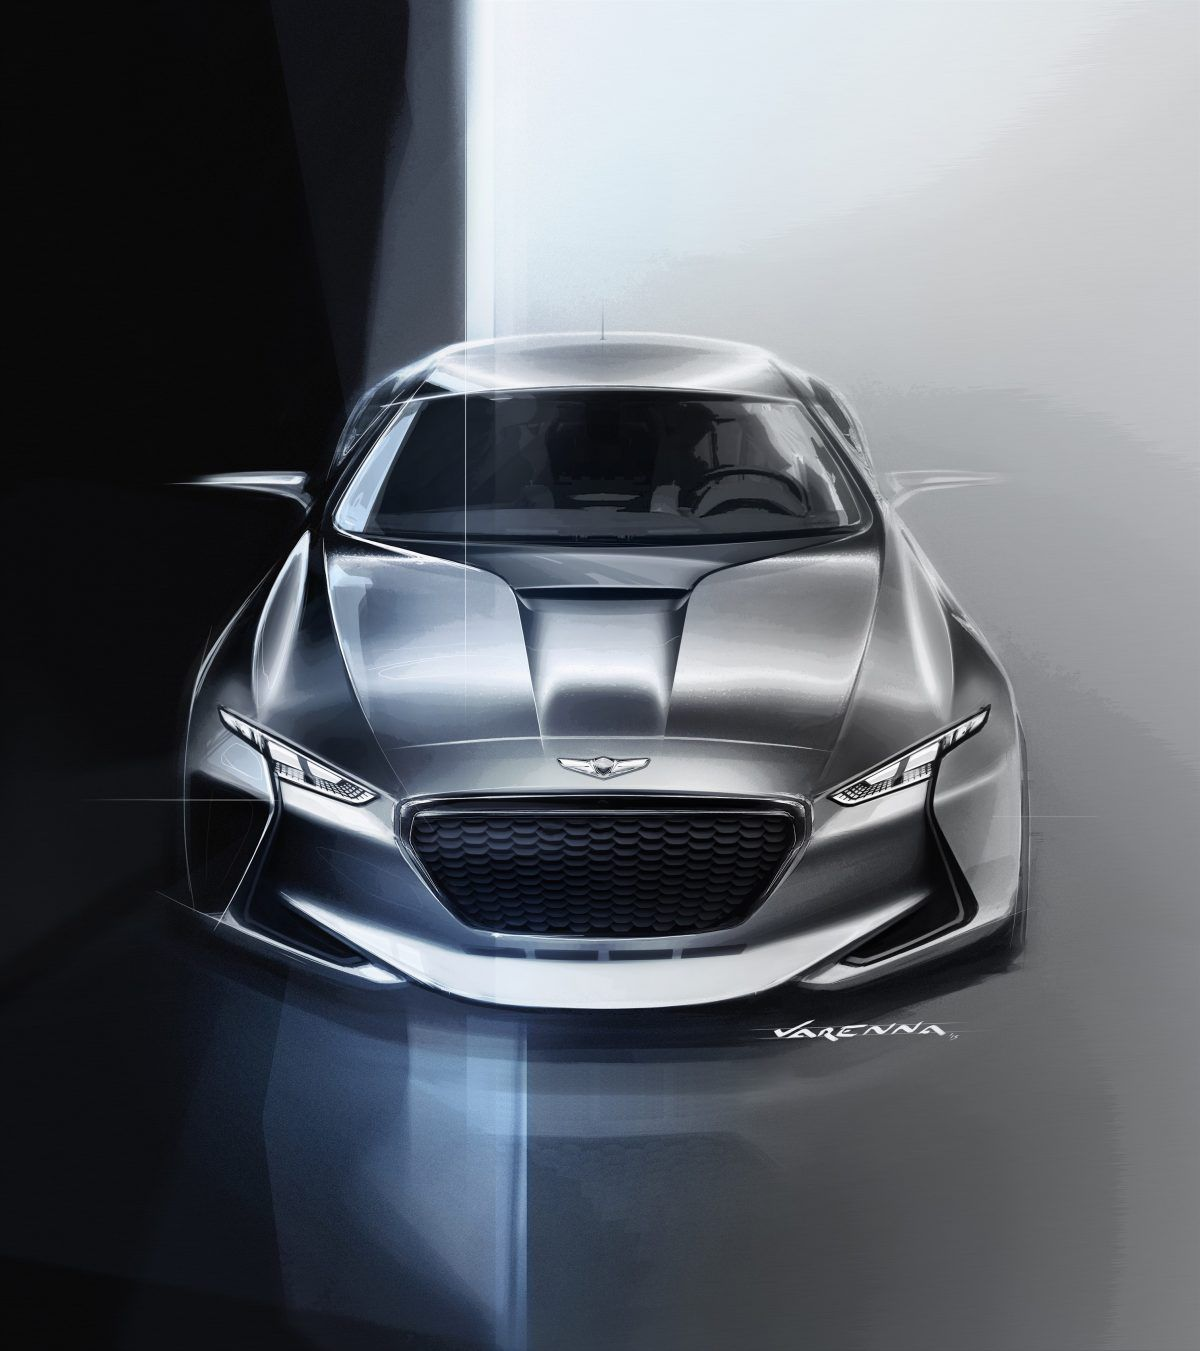 The Story Behind Genesis The New Global Luxury Car Brand Concept Cars Futuristic Cars New Luxury Cars